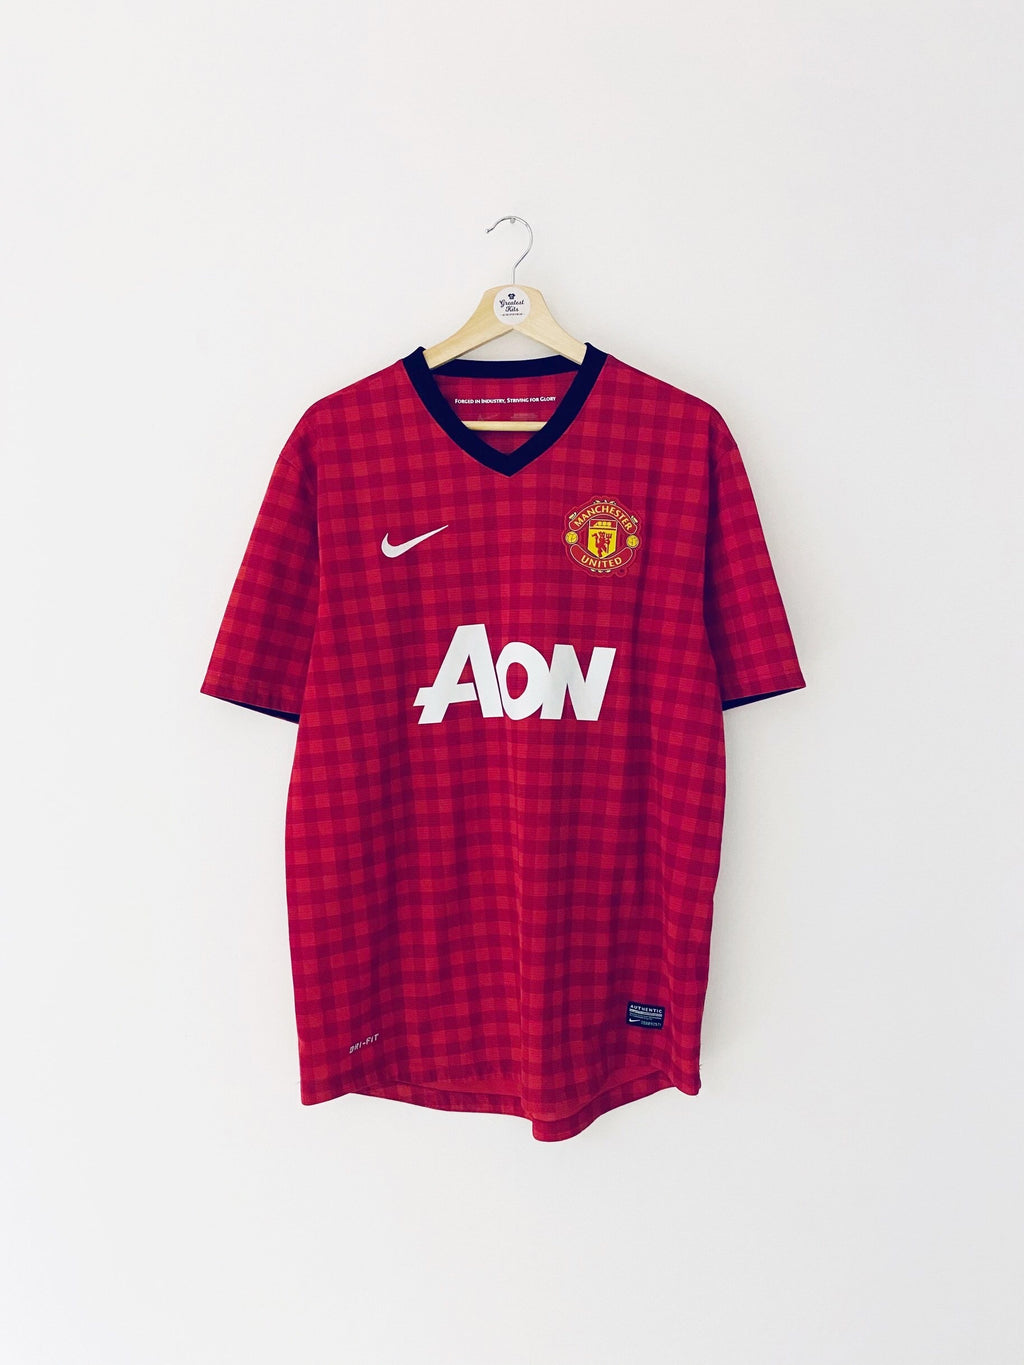 2012/13 Manchester United Home Shirt (L) 9/10